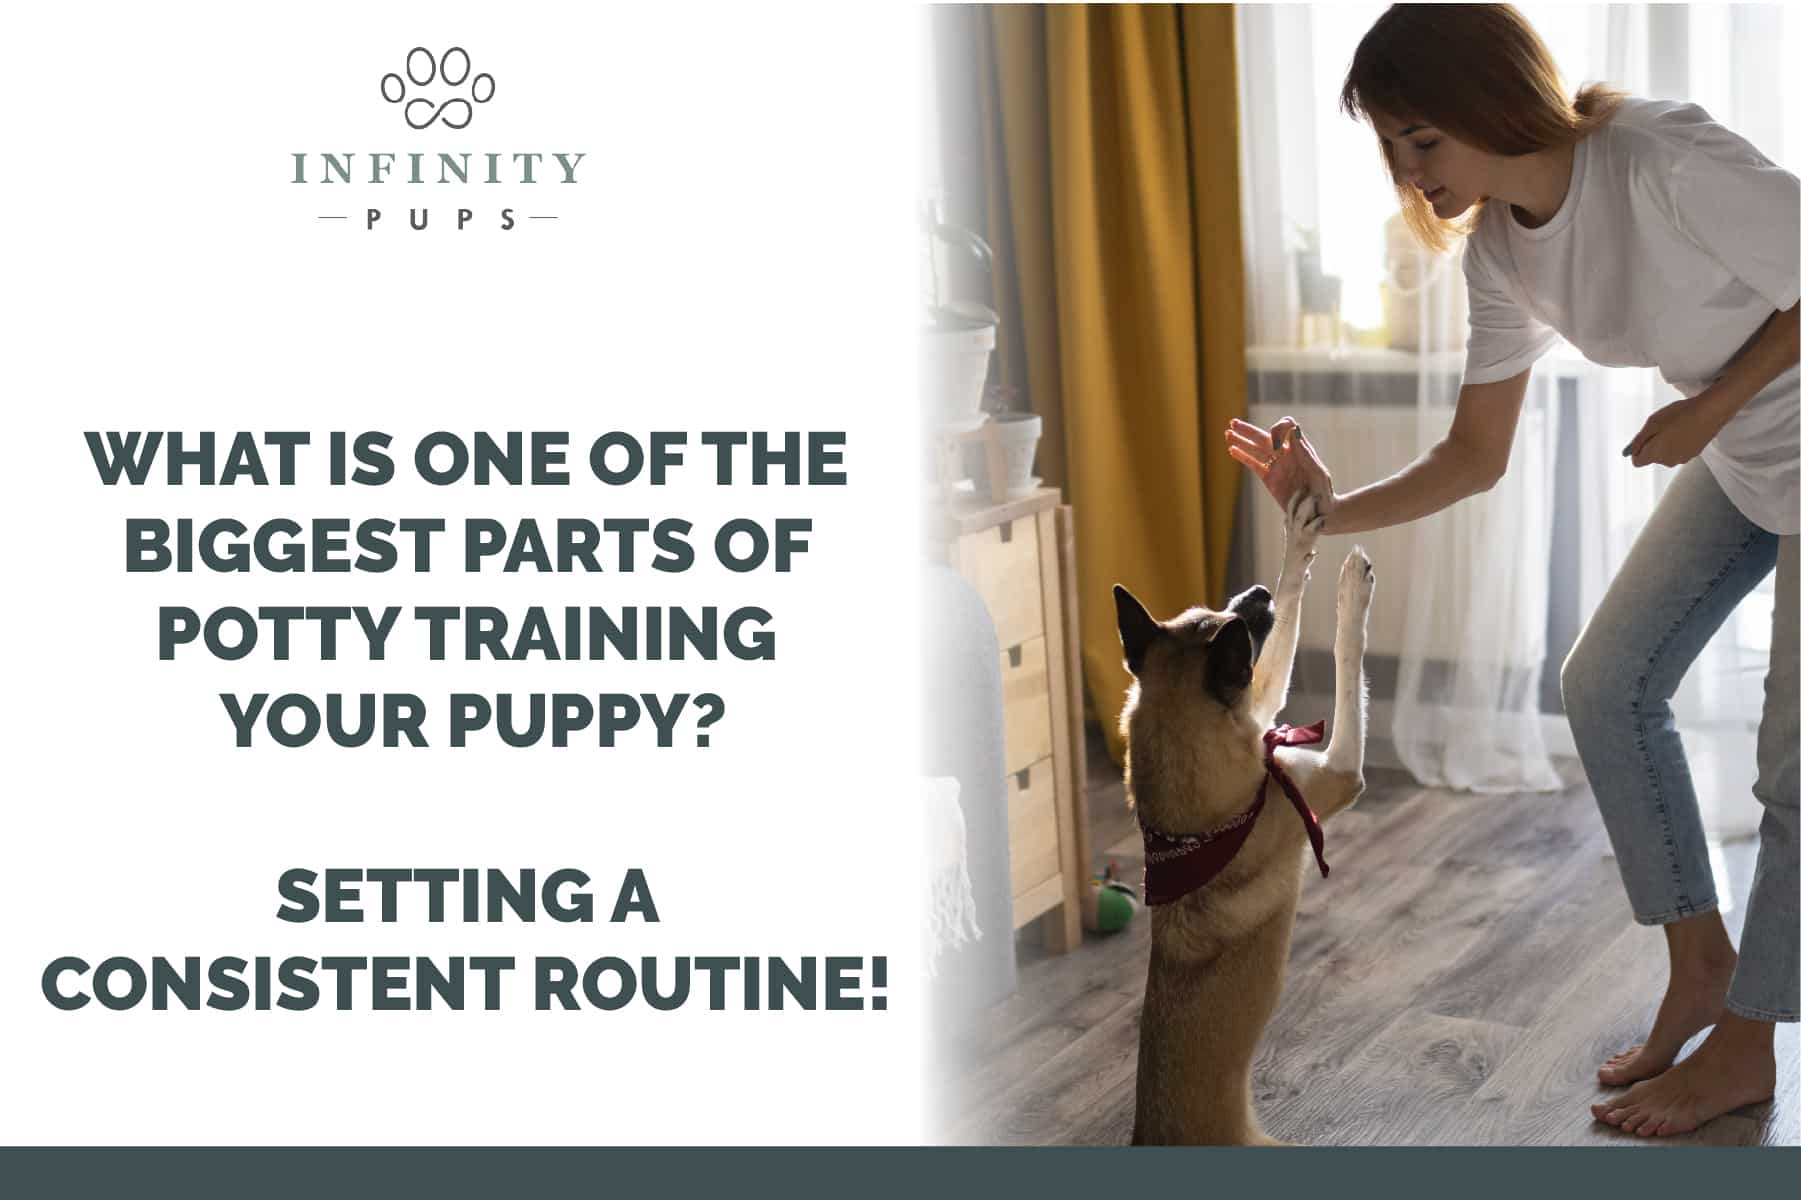 setting a routine is critical for potty training your puppy